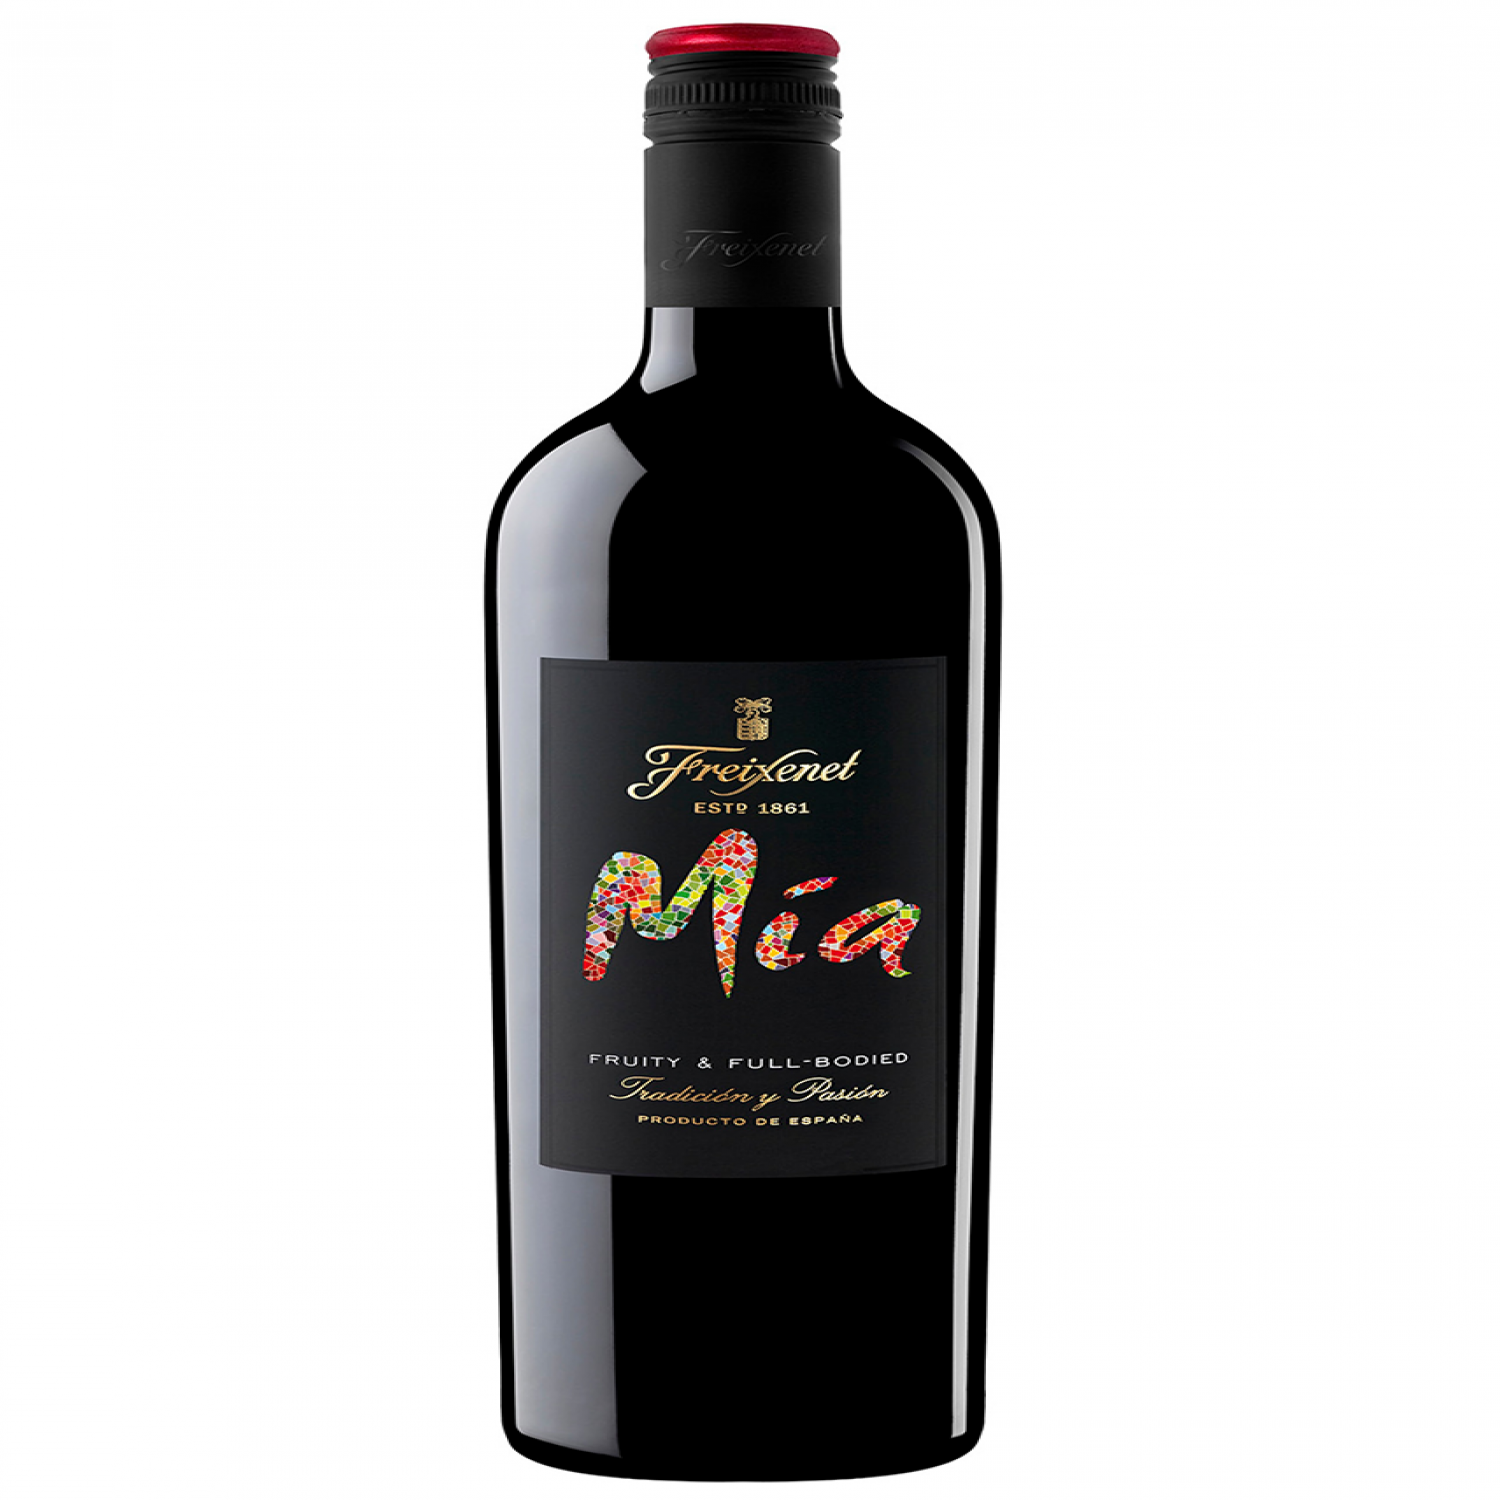 Rượu vang Freixenet Mia Red Fruity & Full Bodied